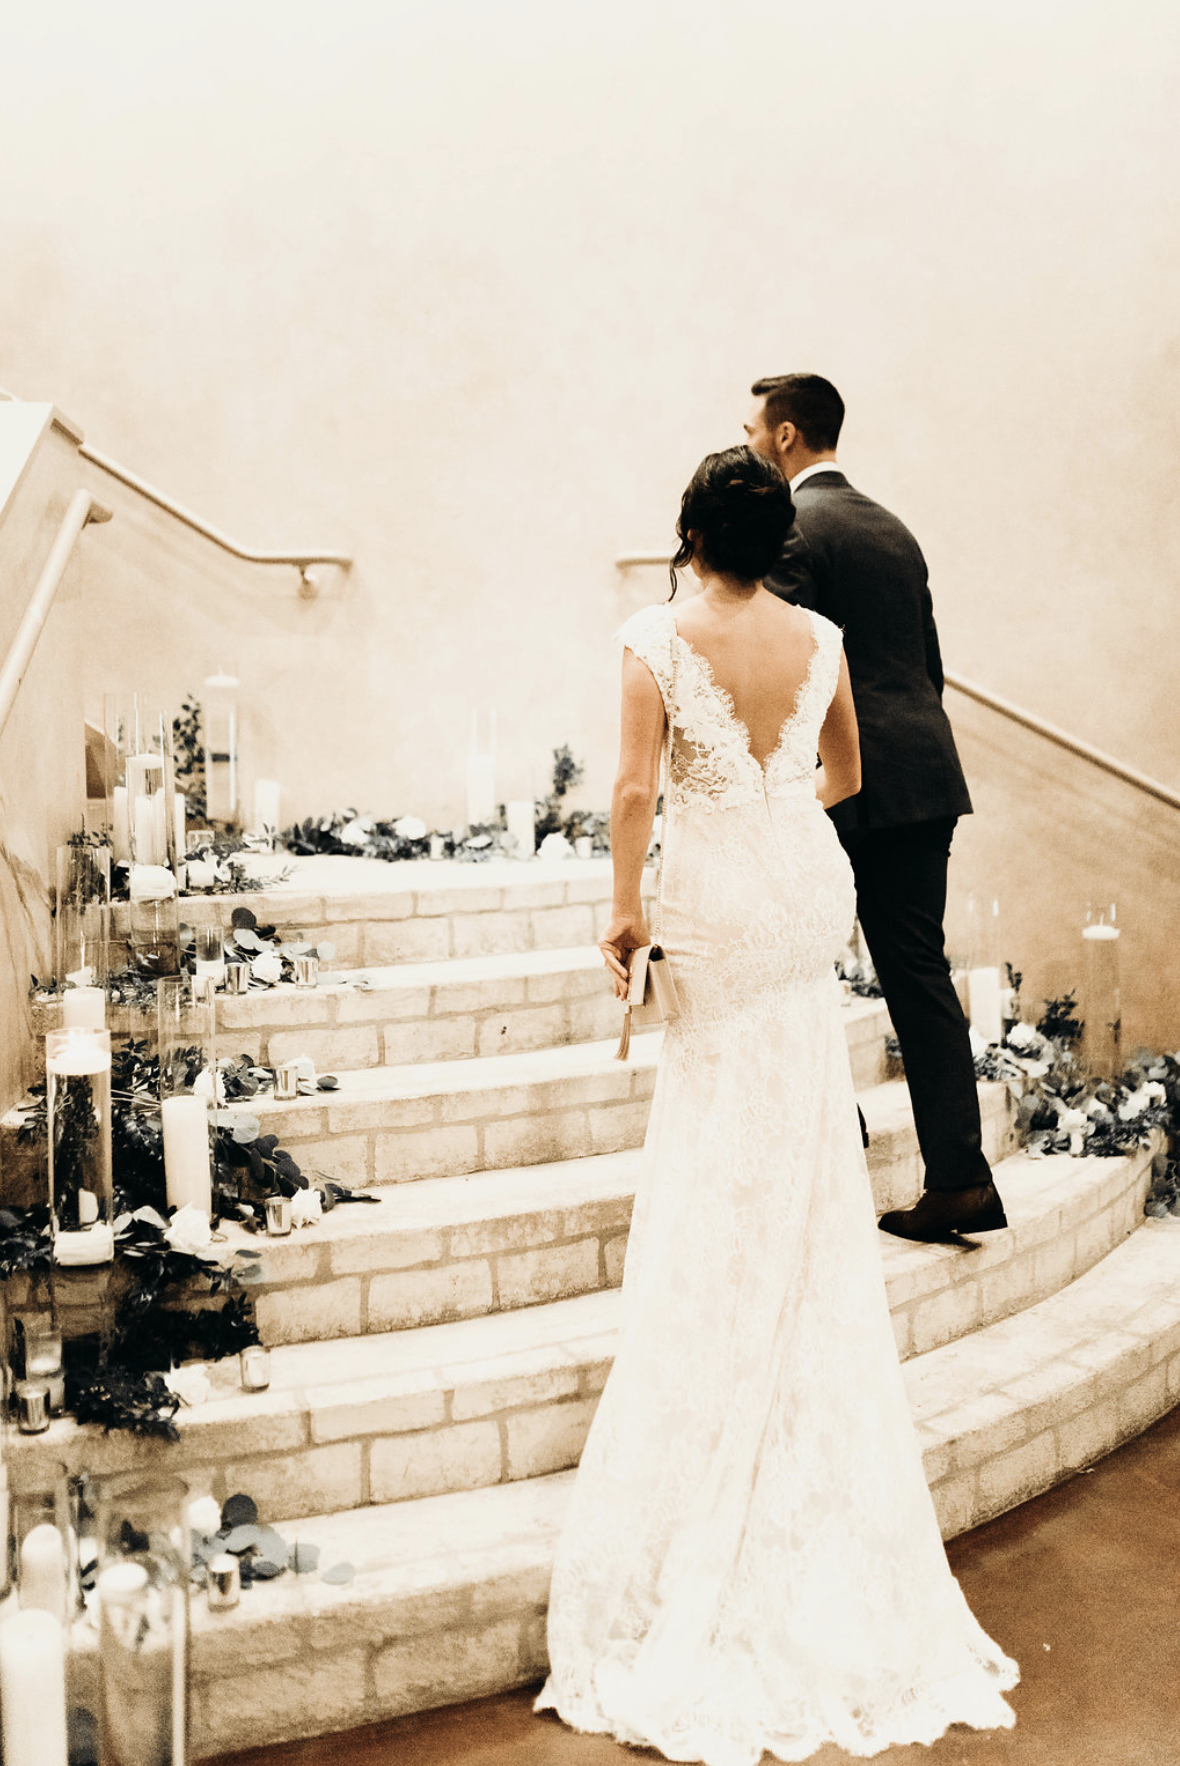 Valerie-and-TJ-McConnell-Wedding-Coordination-by-Cassandra-Clair-Event-Prep-Pittsburgh-Wedding-50.png